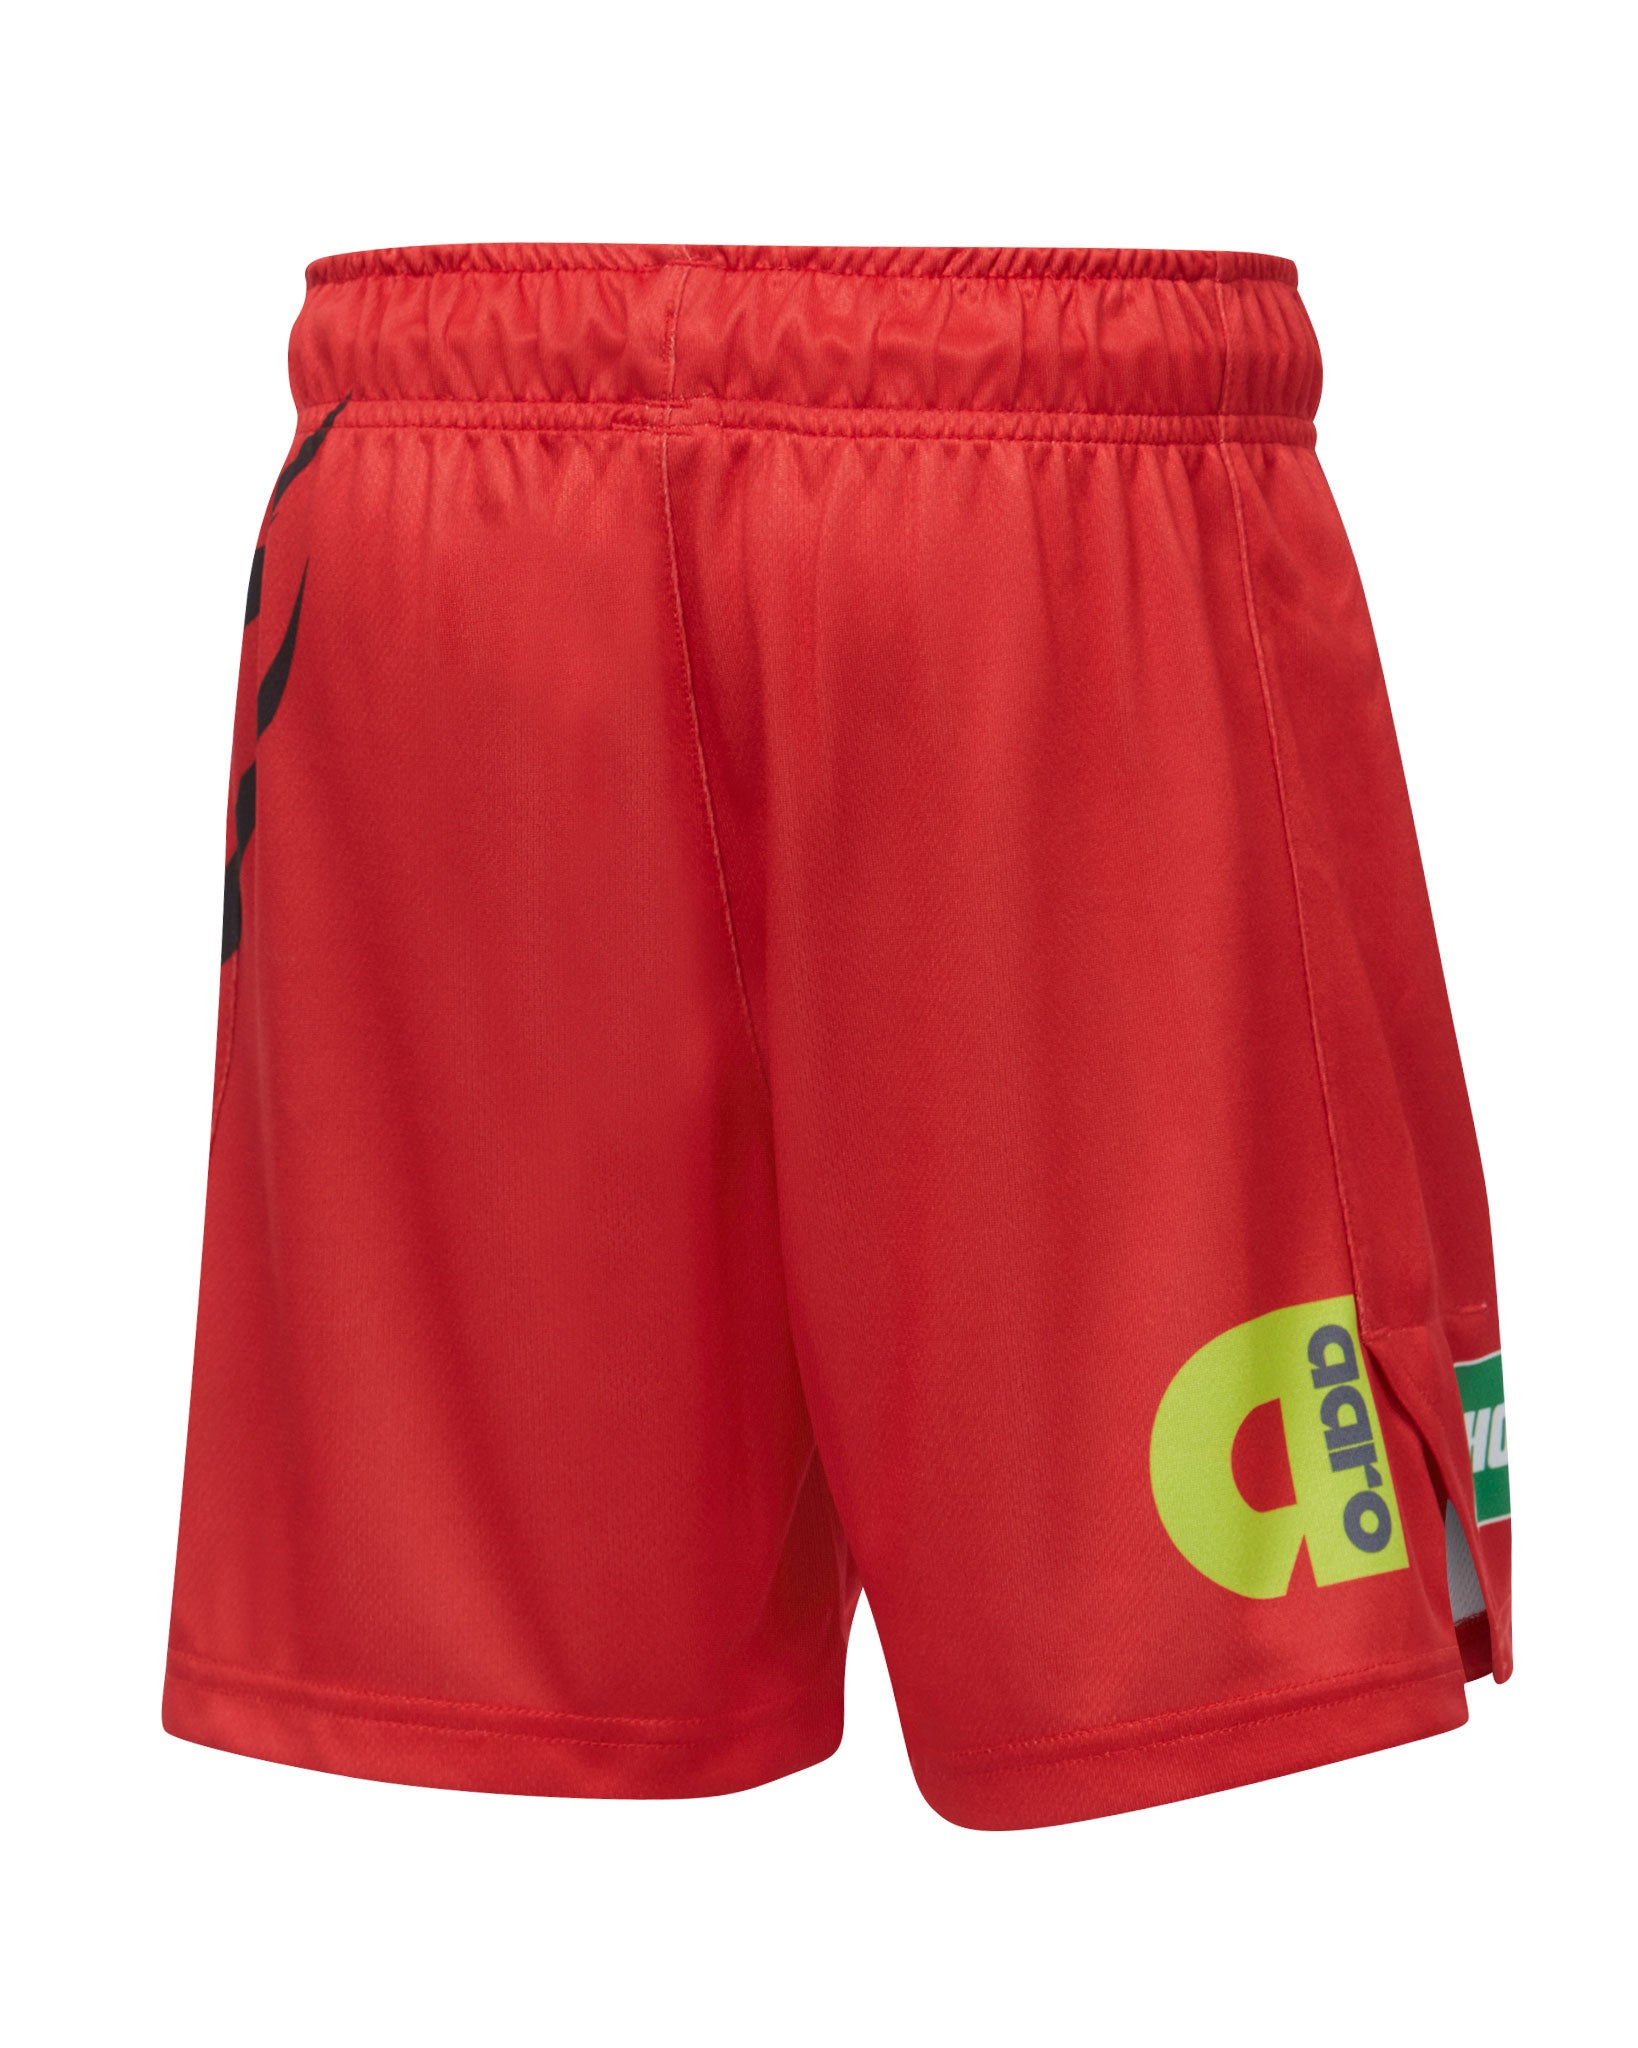 Perth Wildcats 19/20 On Court Home Shorts